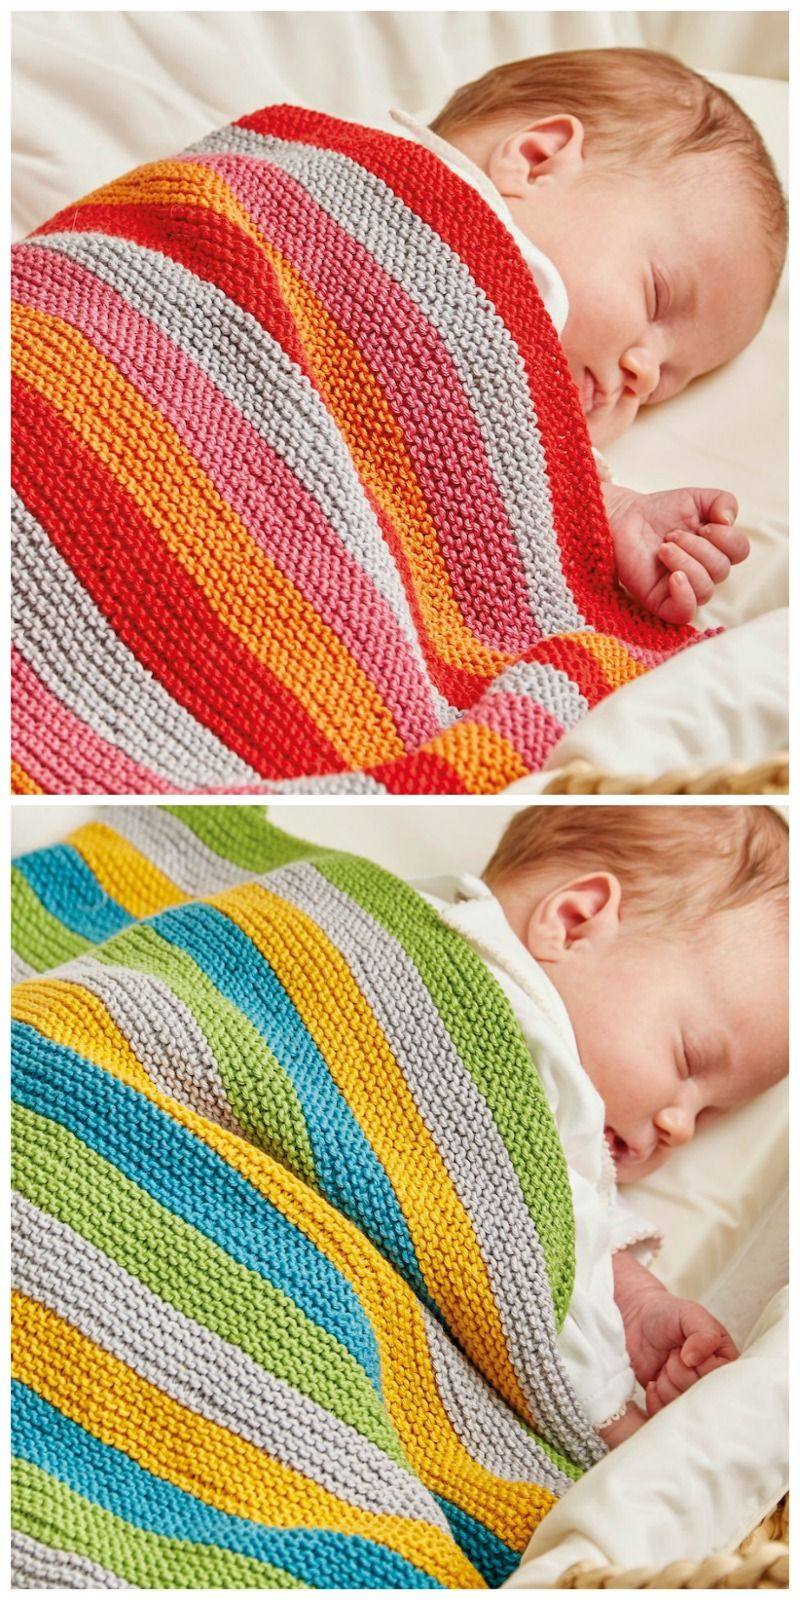 Free knitting pattern ollie and polly blankets by jem weston with free knitting pattern ollie and polly blankets by jem weston from the knitted nursery collection 14 cuddly toys and colourful accessories for babies bankloansurffo Images